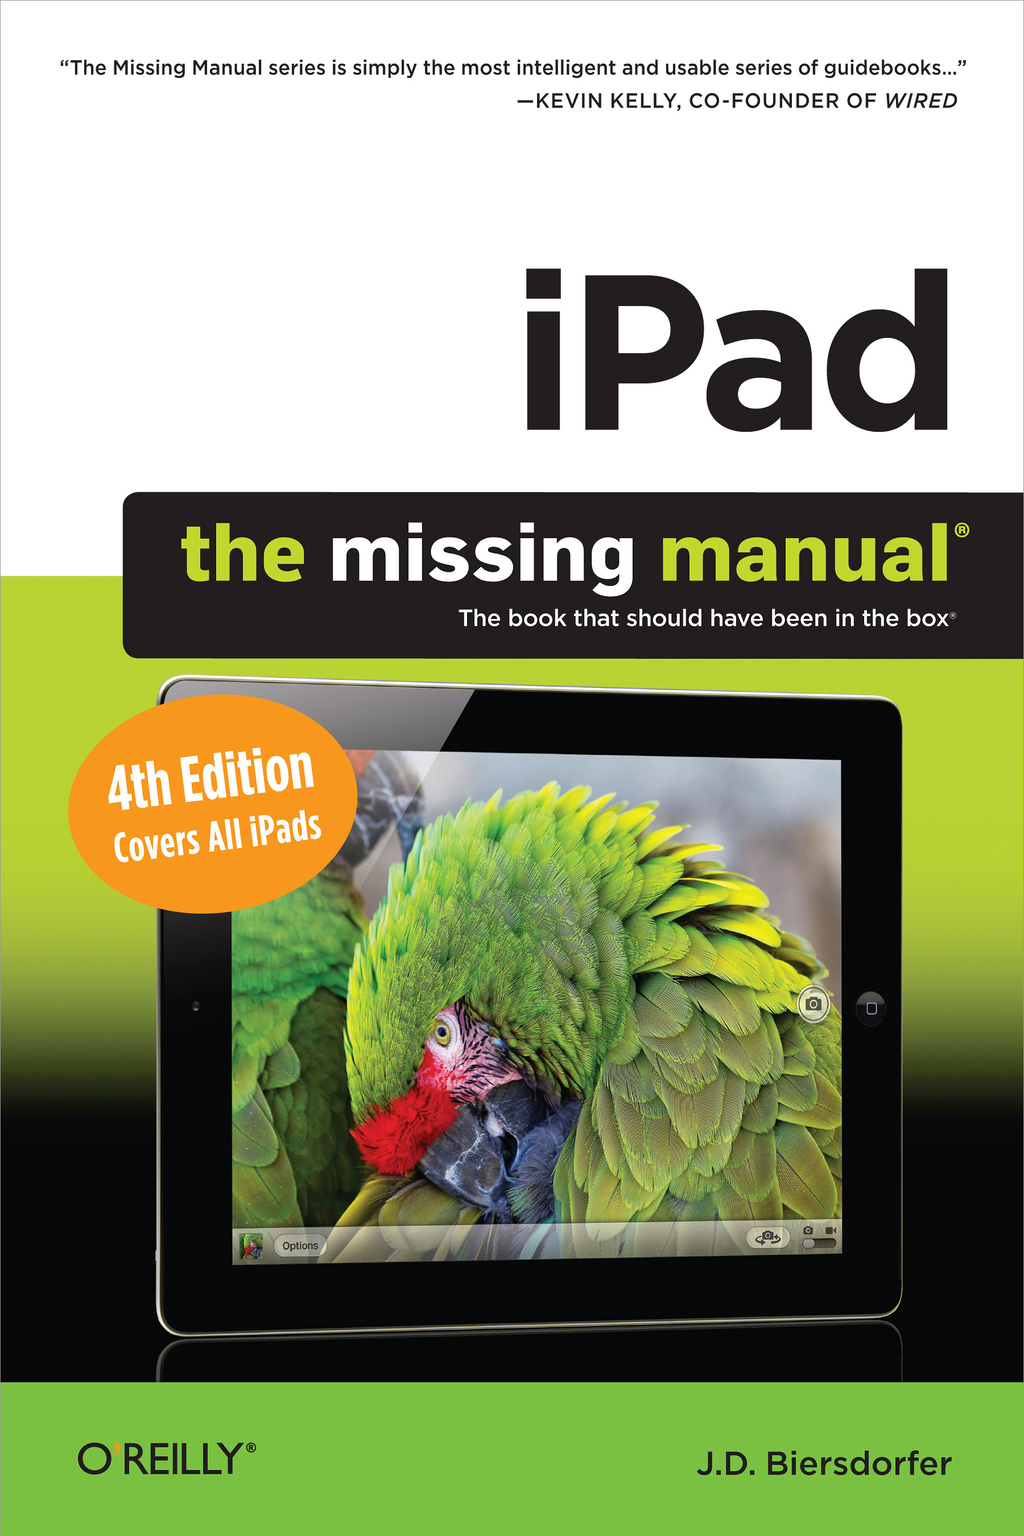 iPad: The Missing Manual By: J.D. Biersdorfer